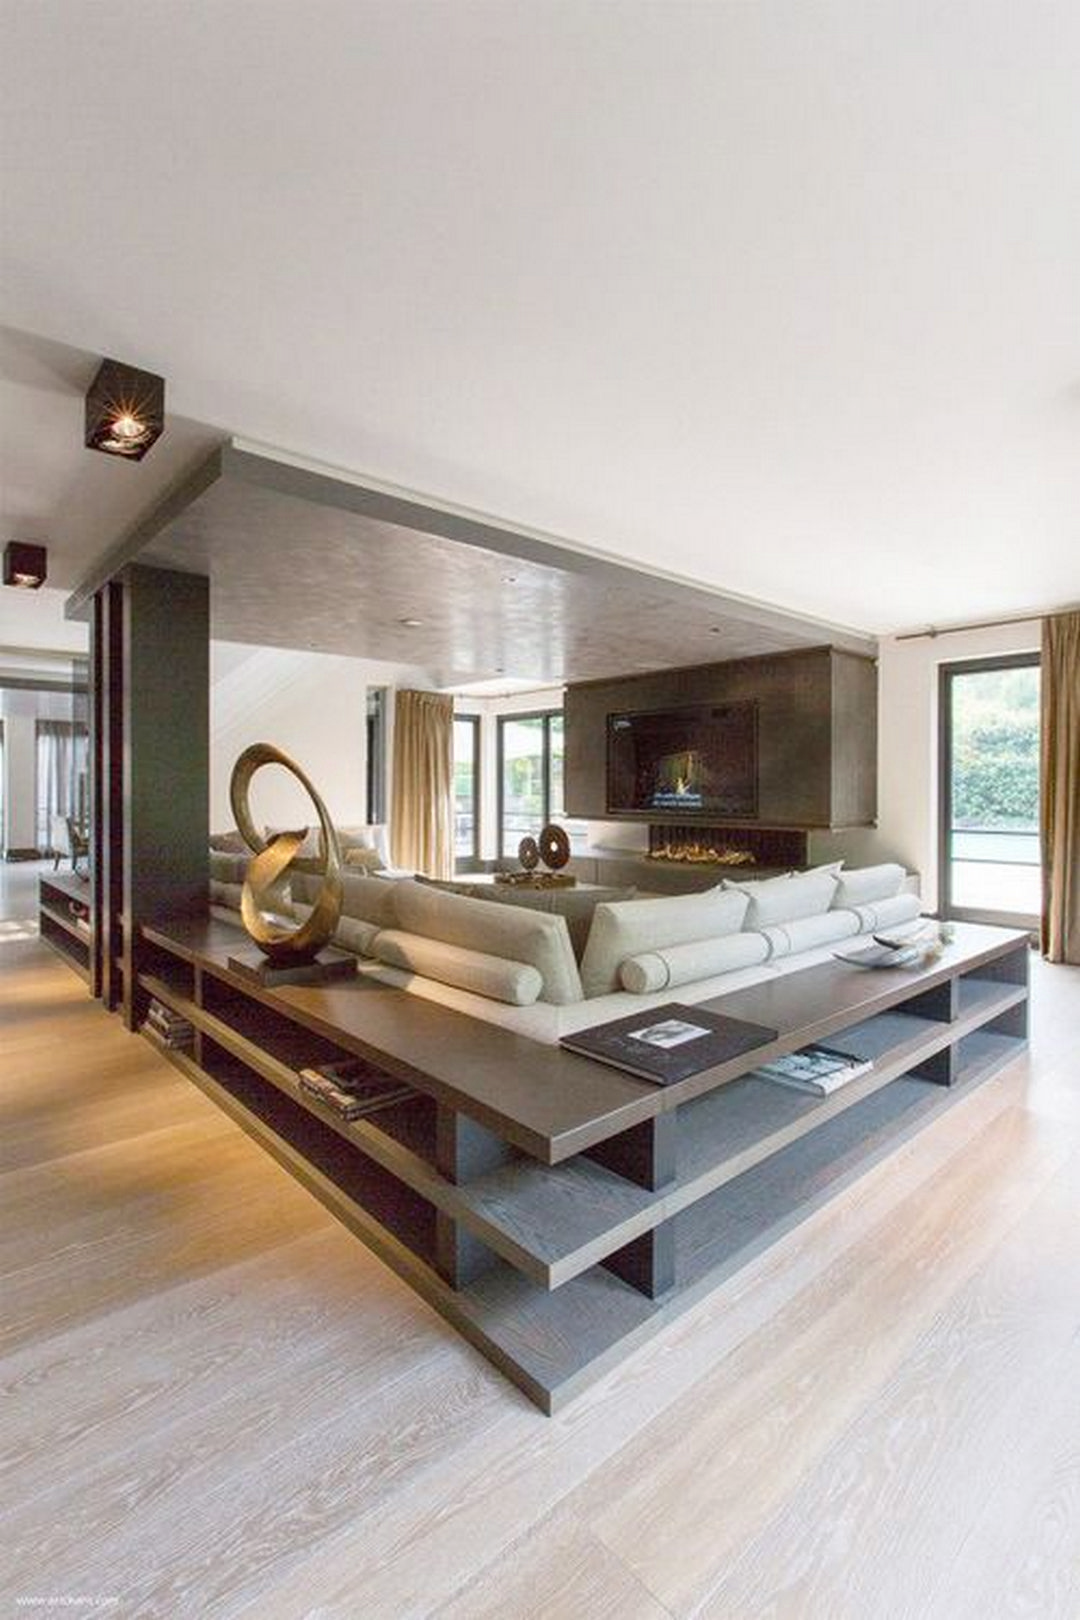 Delicieux Stylish Modern Living Room Interior Ideas: 78 Amazing Photos ...